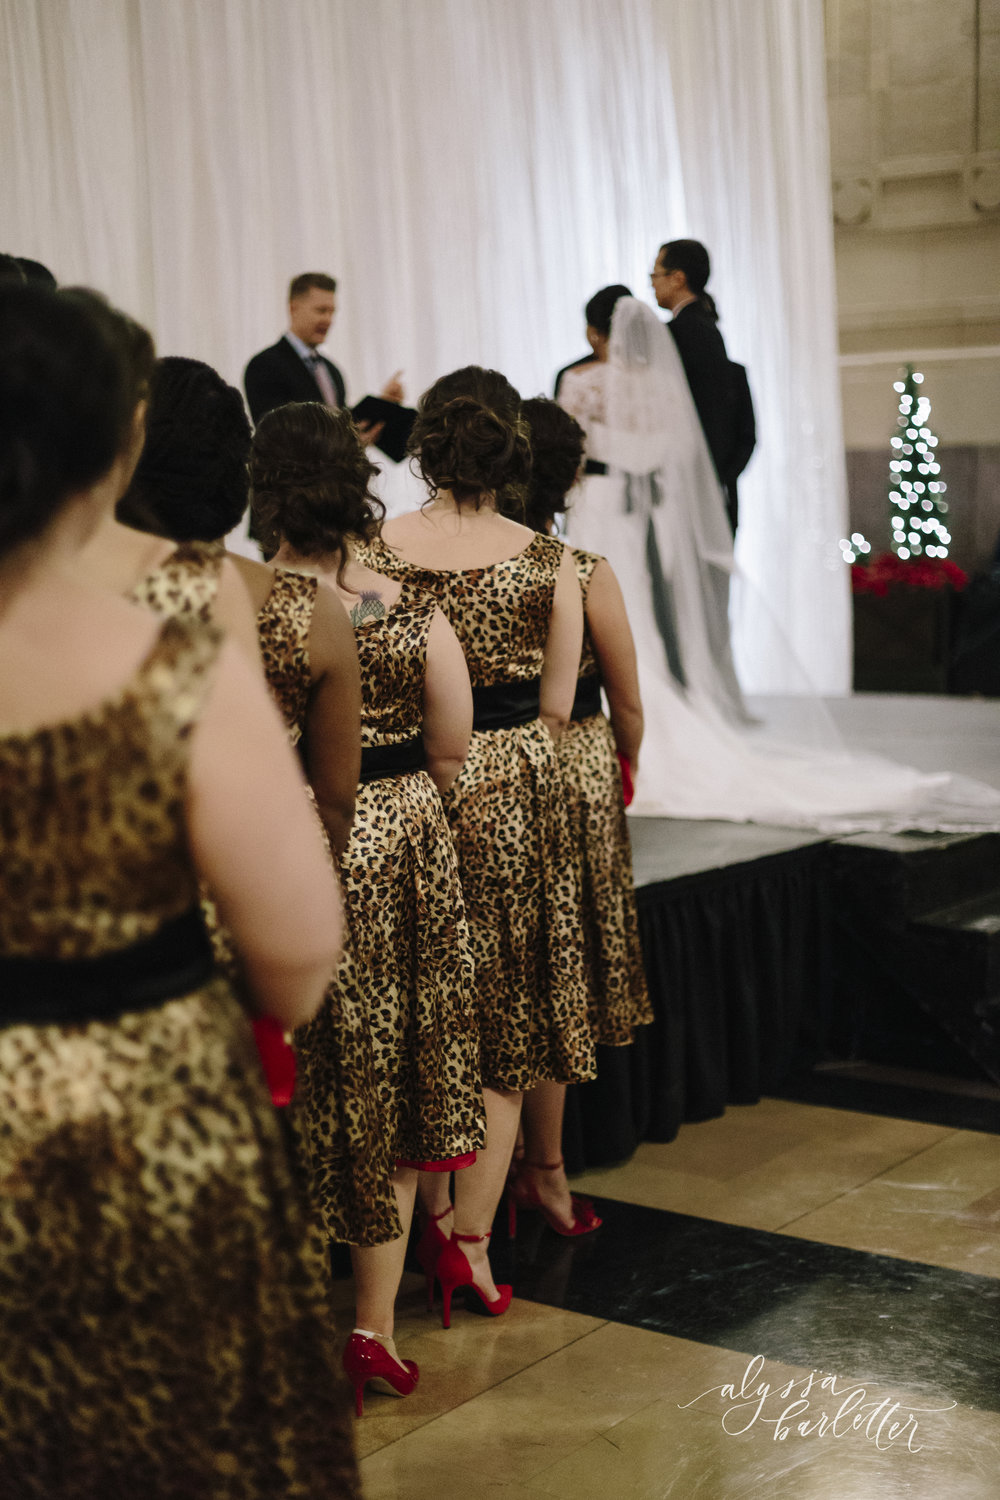 alyssa barletter photography union station wedding photos leopard print winter wedding-1-42.jpg